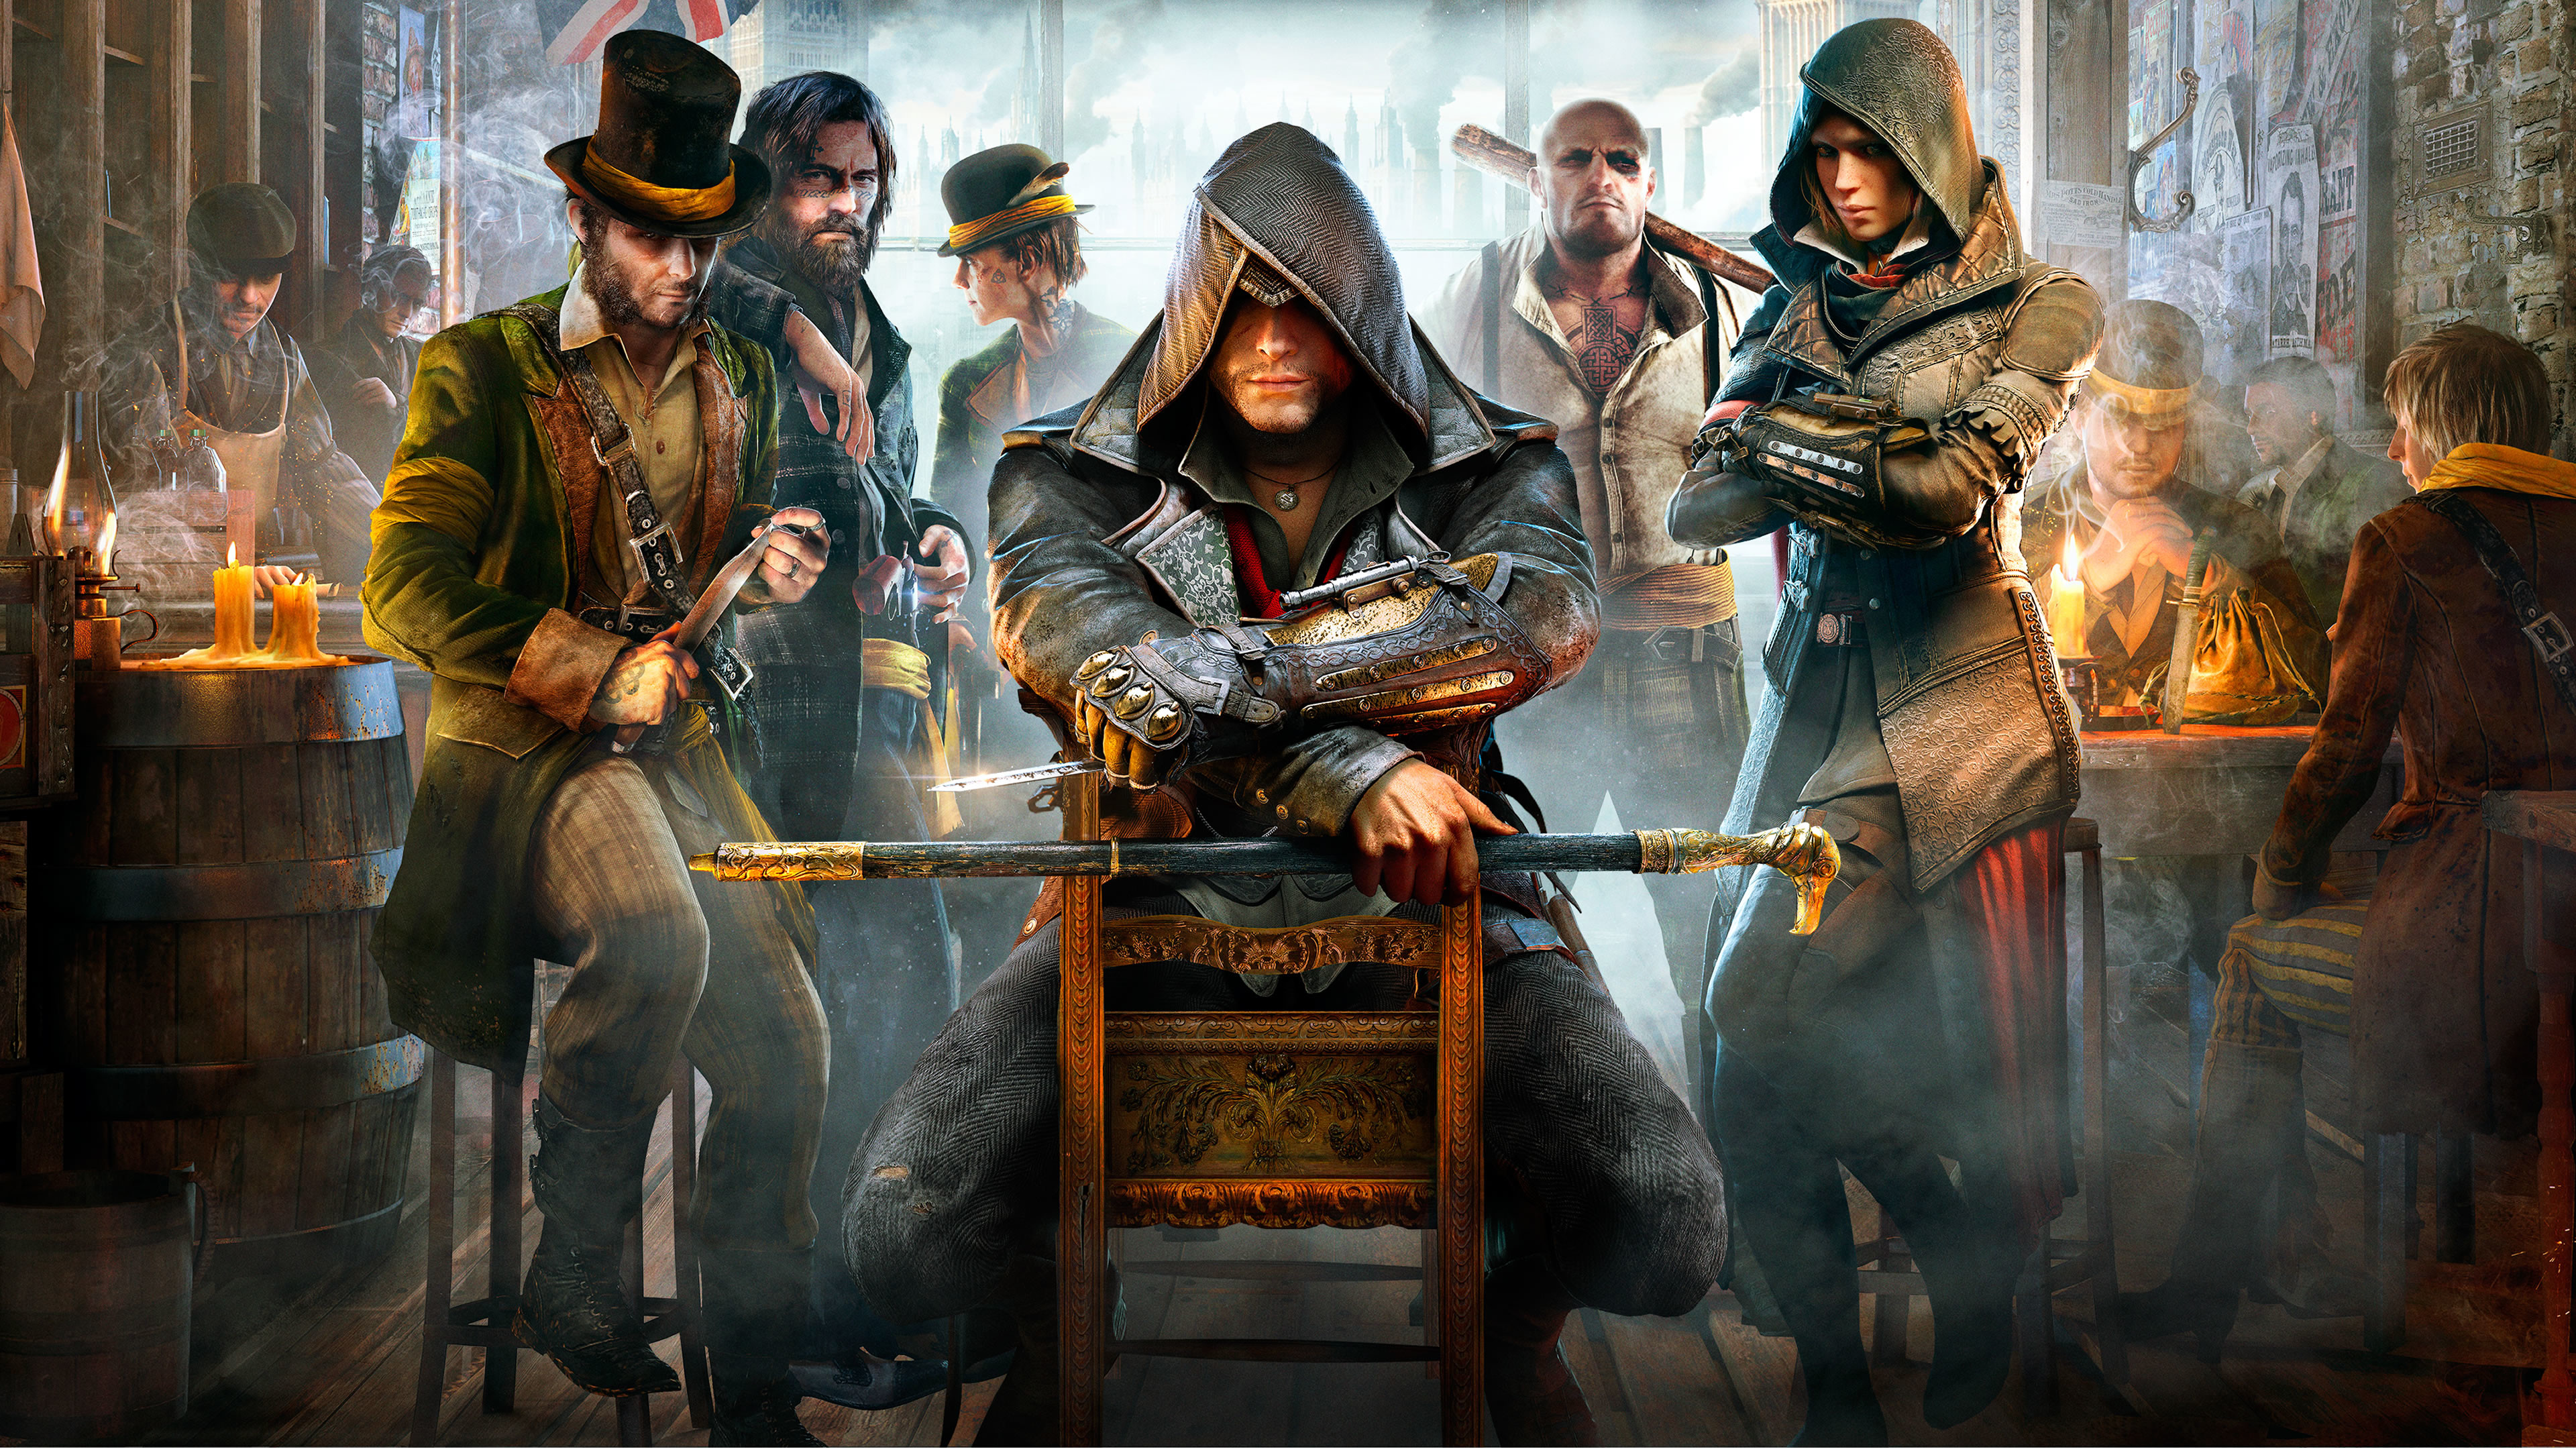 Assassins Creed Syndicate Wallpapers Wallpapertag Images, Photos, Reviews